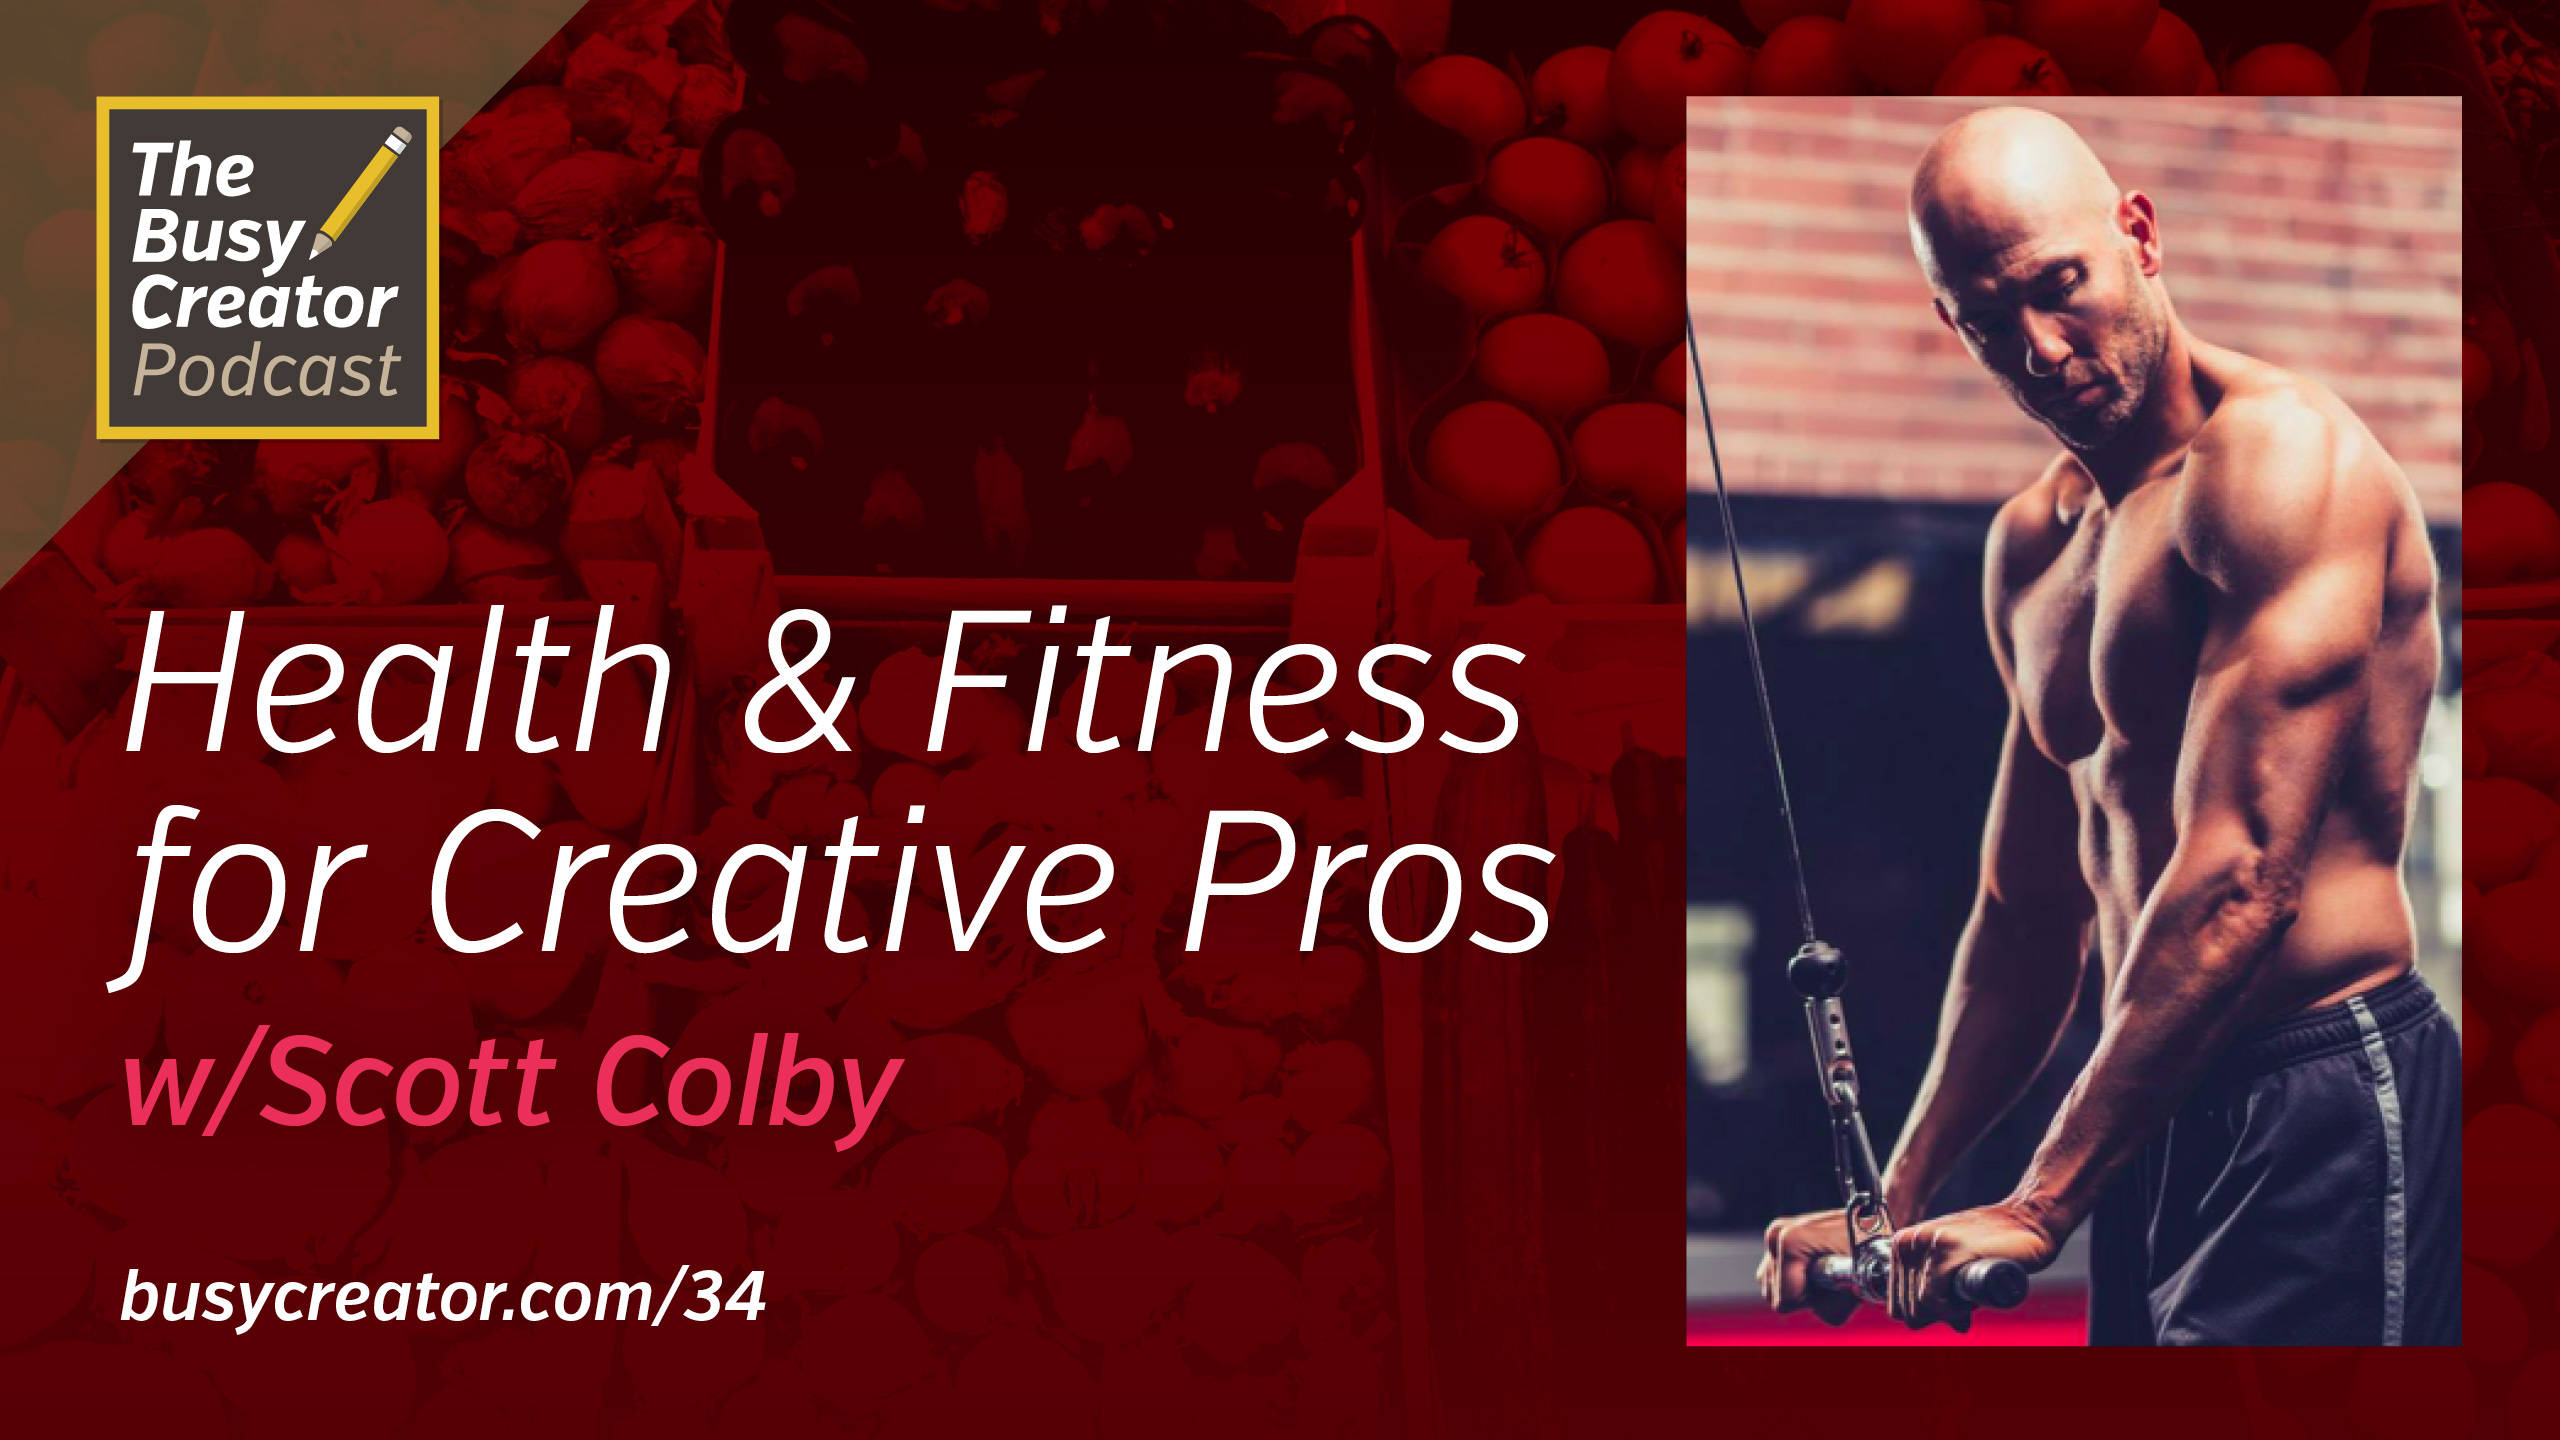 Staying Fit & Focused: Health & Wellness for Creative Pros, with Trainer Scott Colby